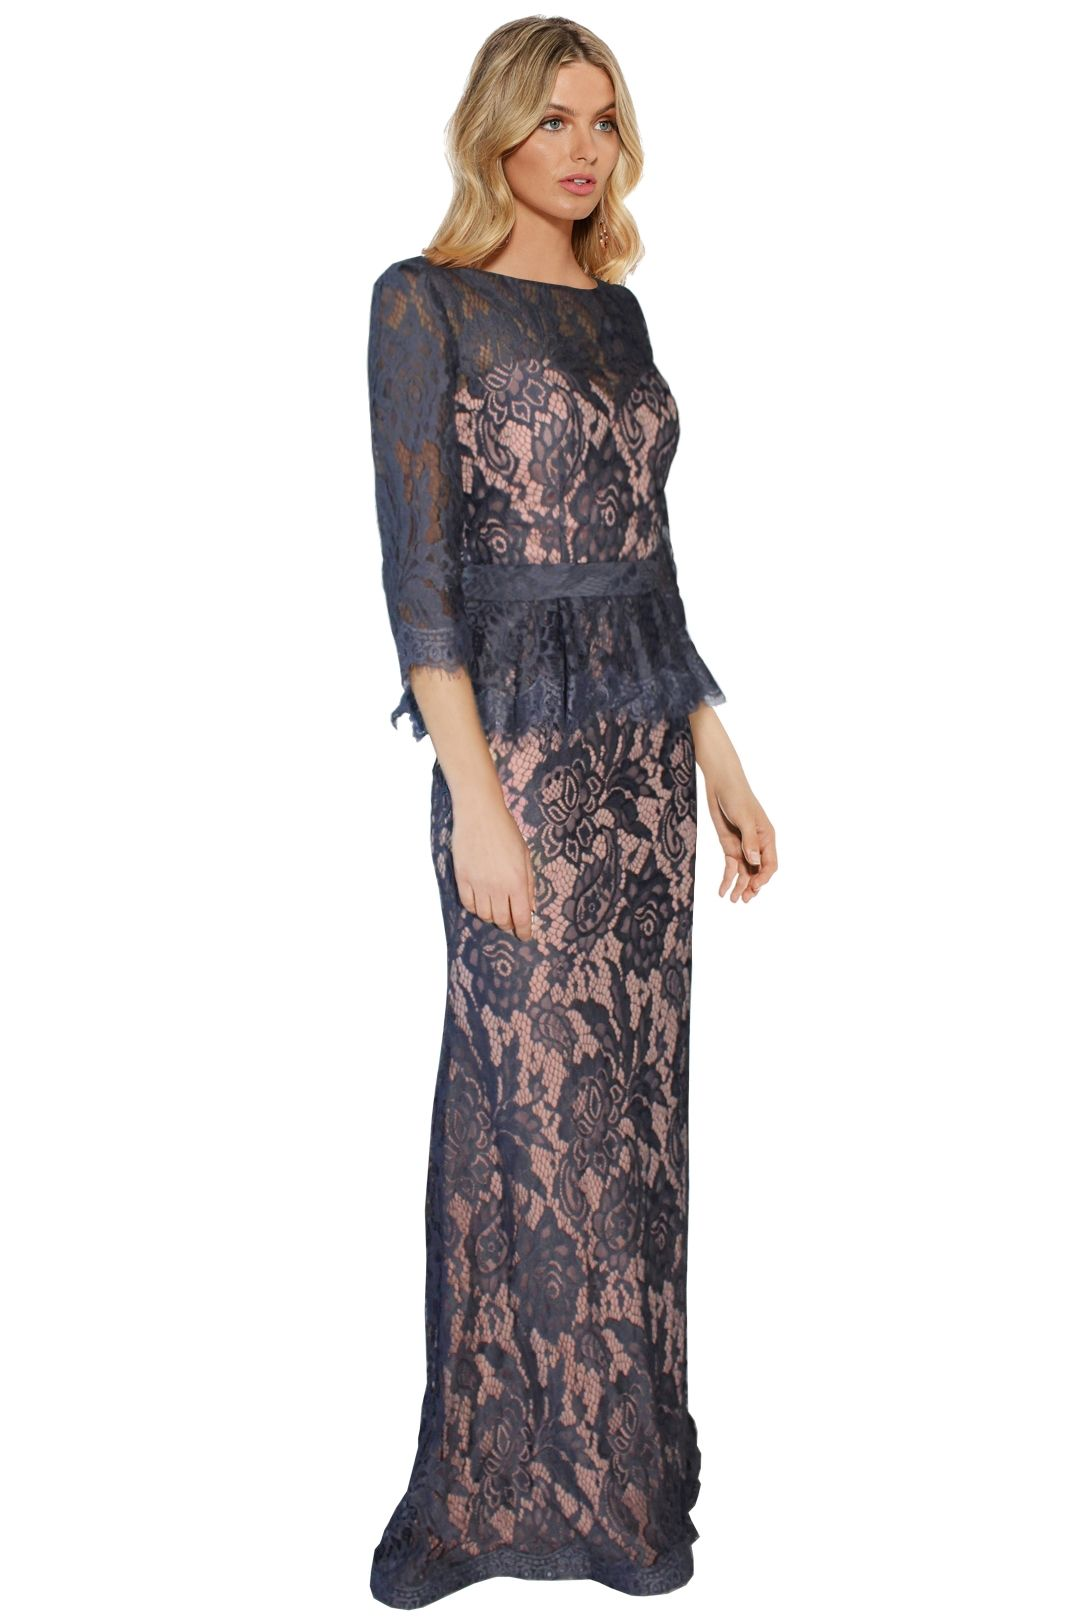 Jadore - Tessa Lace Gown - Grey Lace - Side